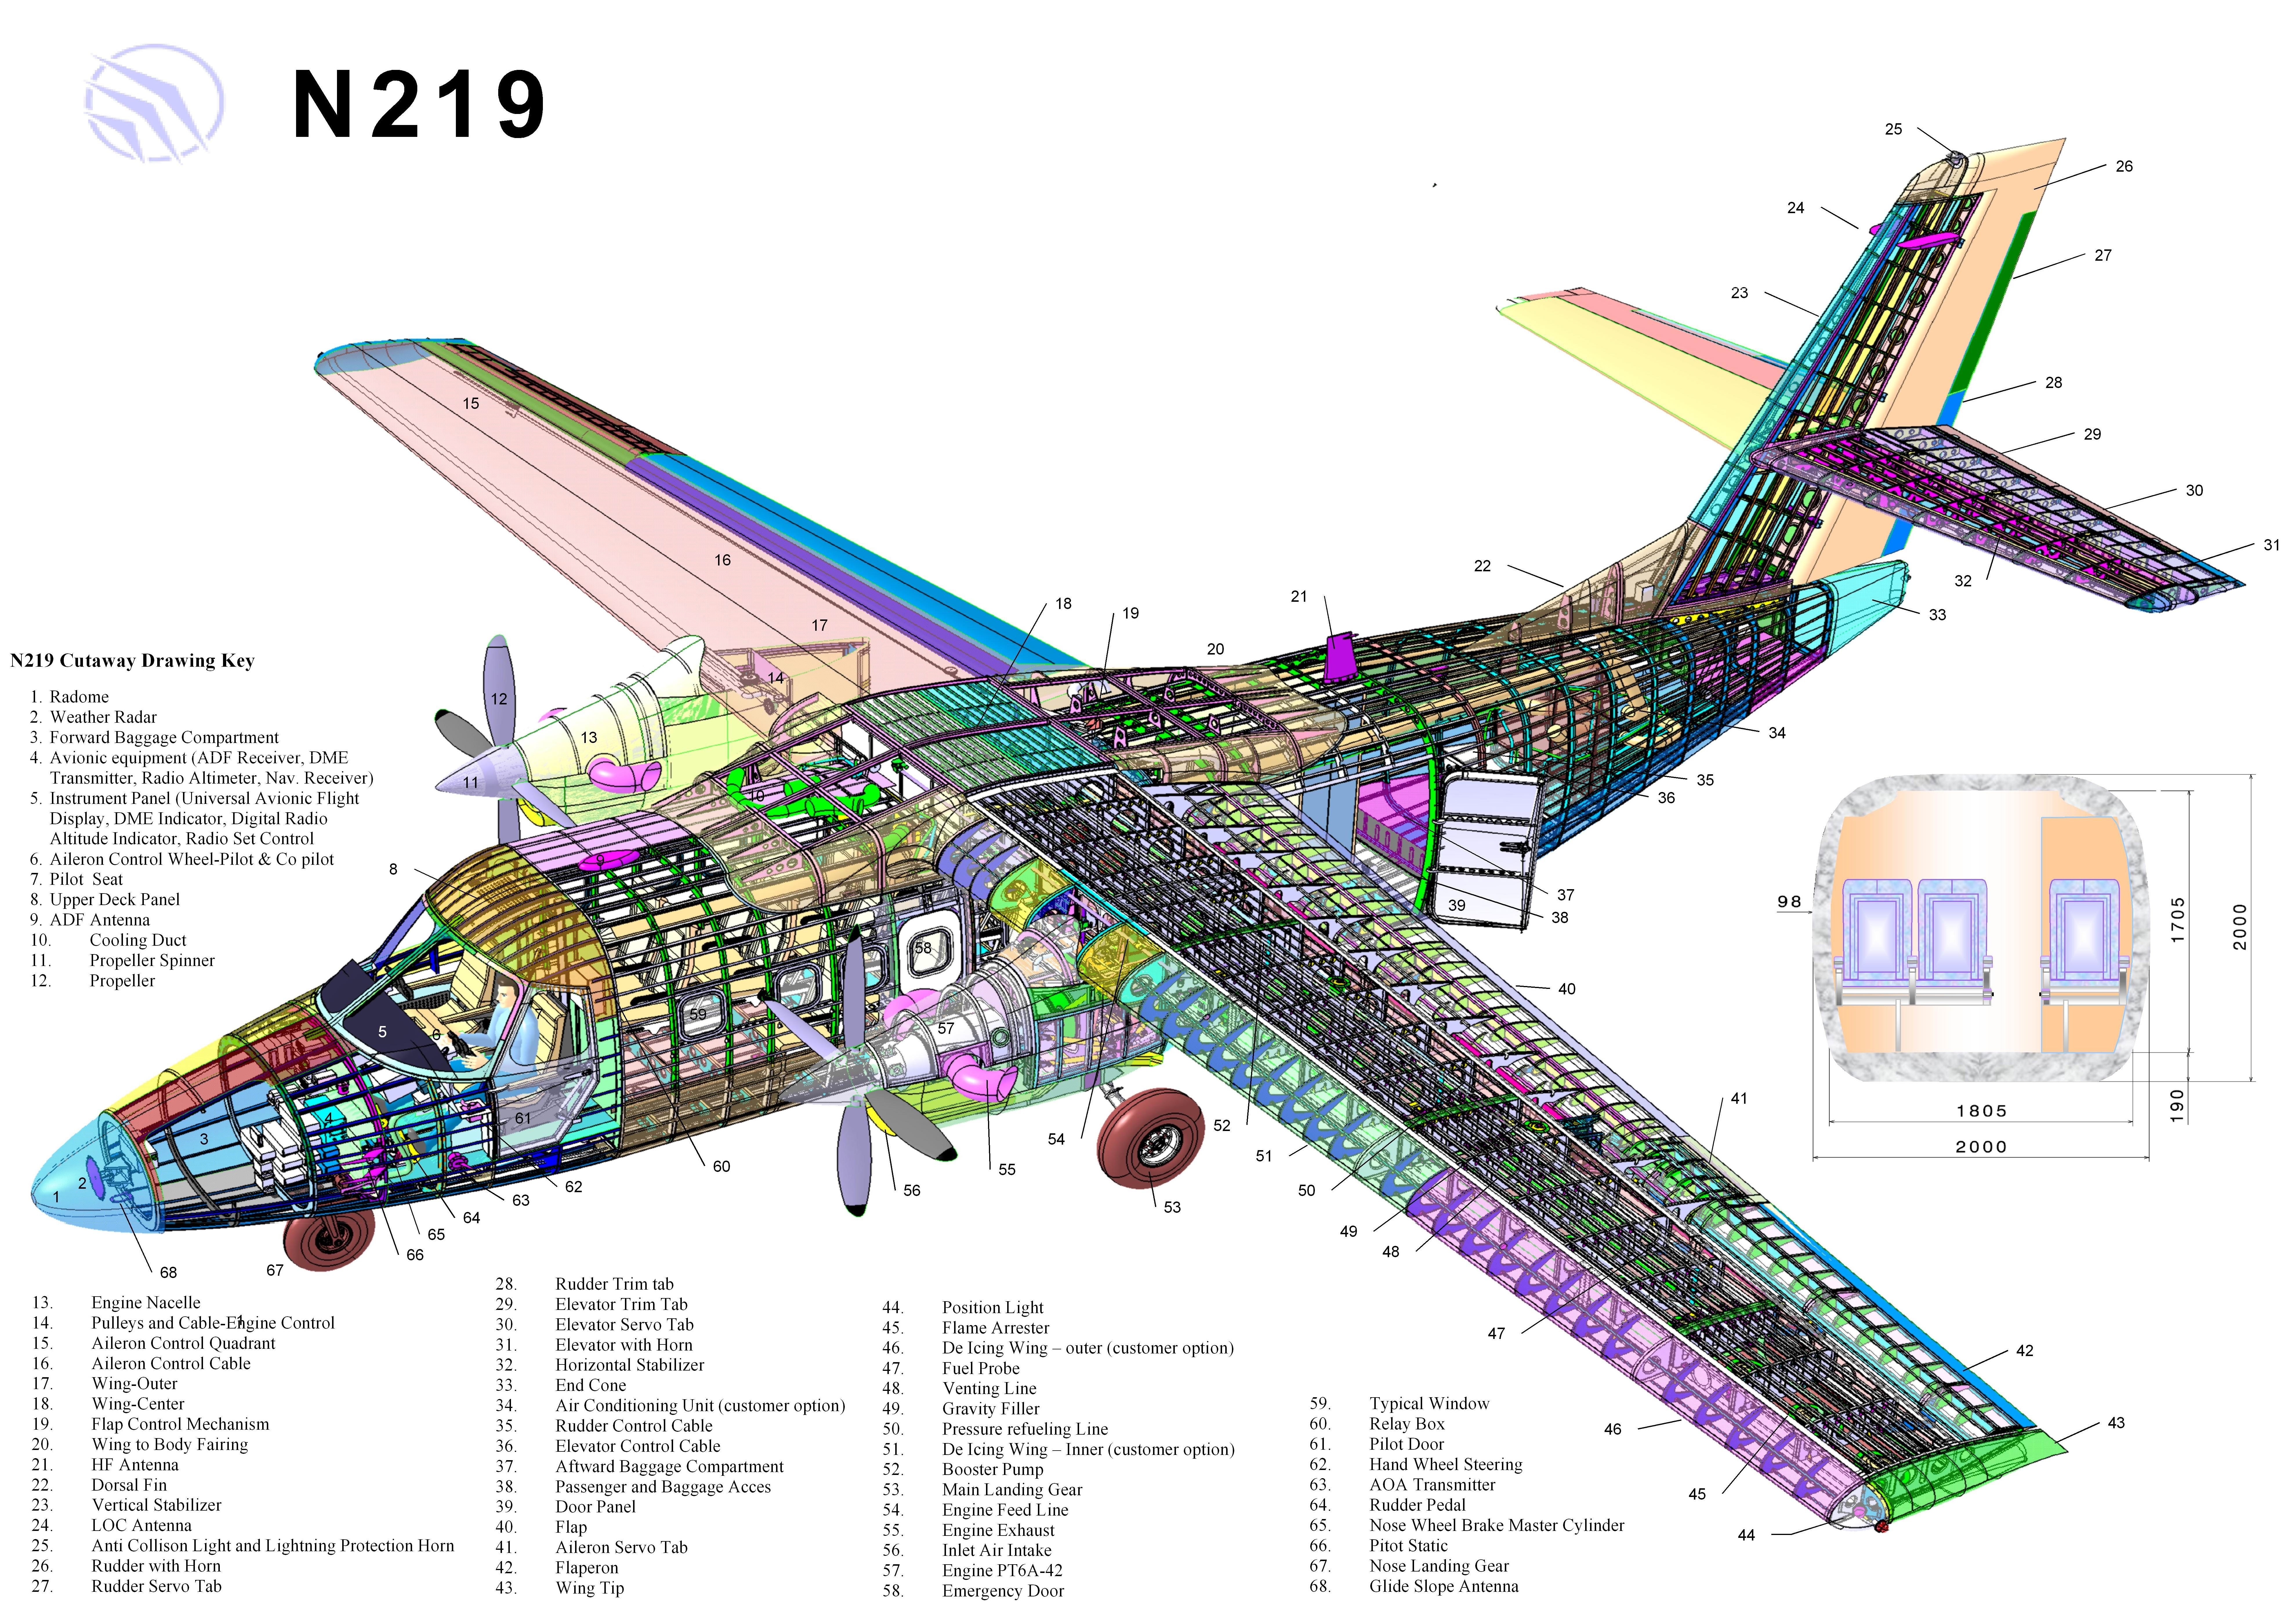 free download pictures of indonesian aerospace n 219 | gogolmogol ...